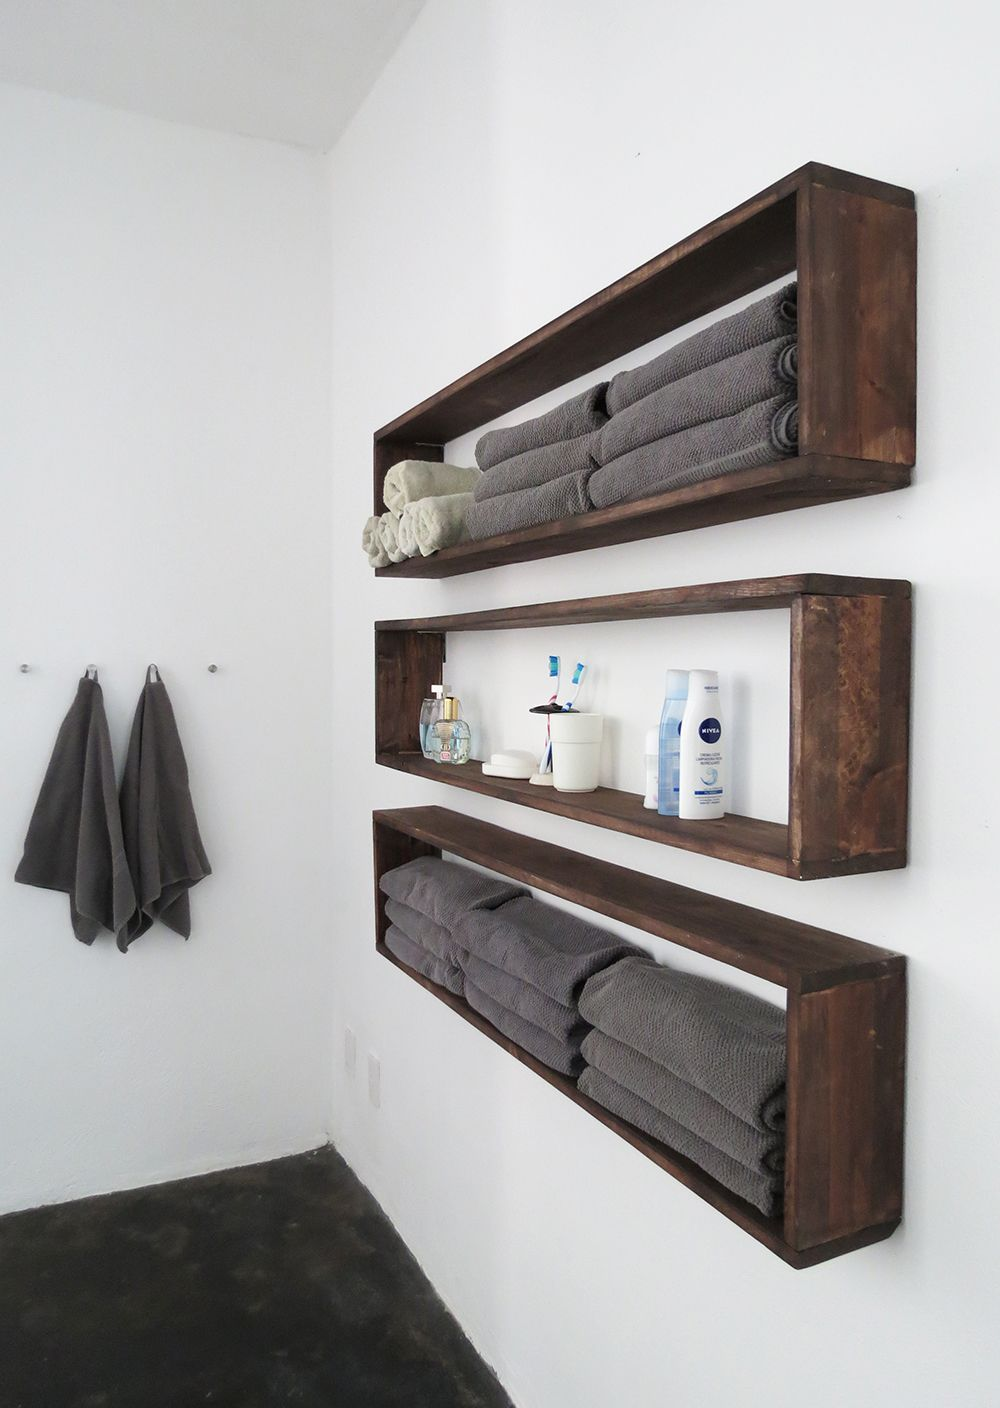 Who need extra storage everyone i guess so i made those wall shelves to organize the bathroom but you can use them in any room the